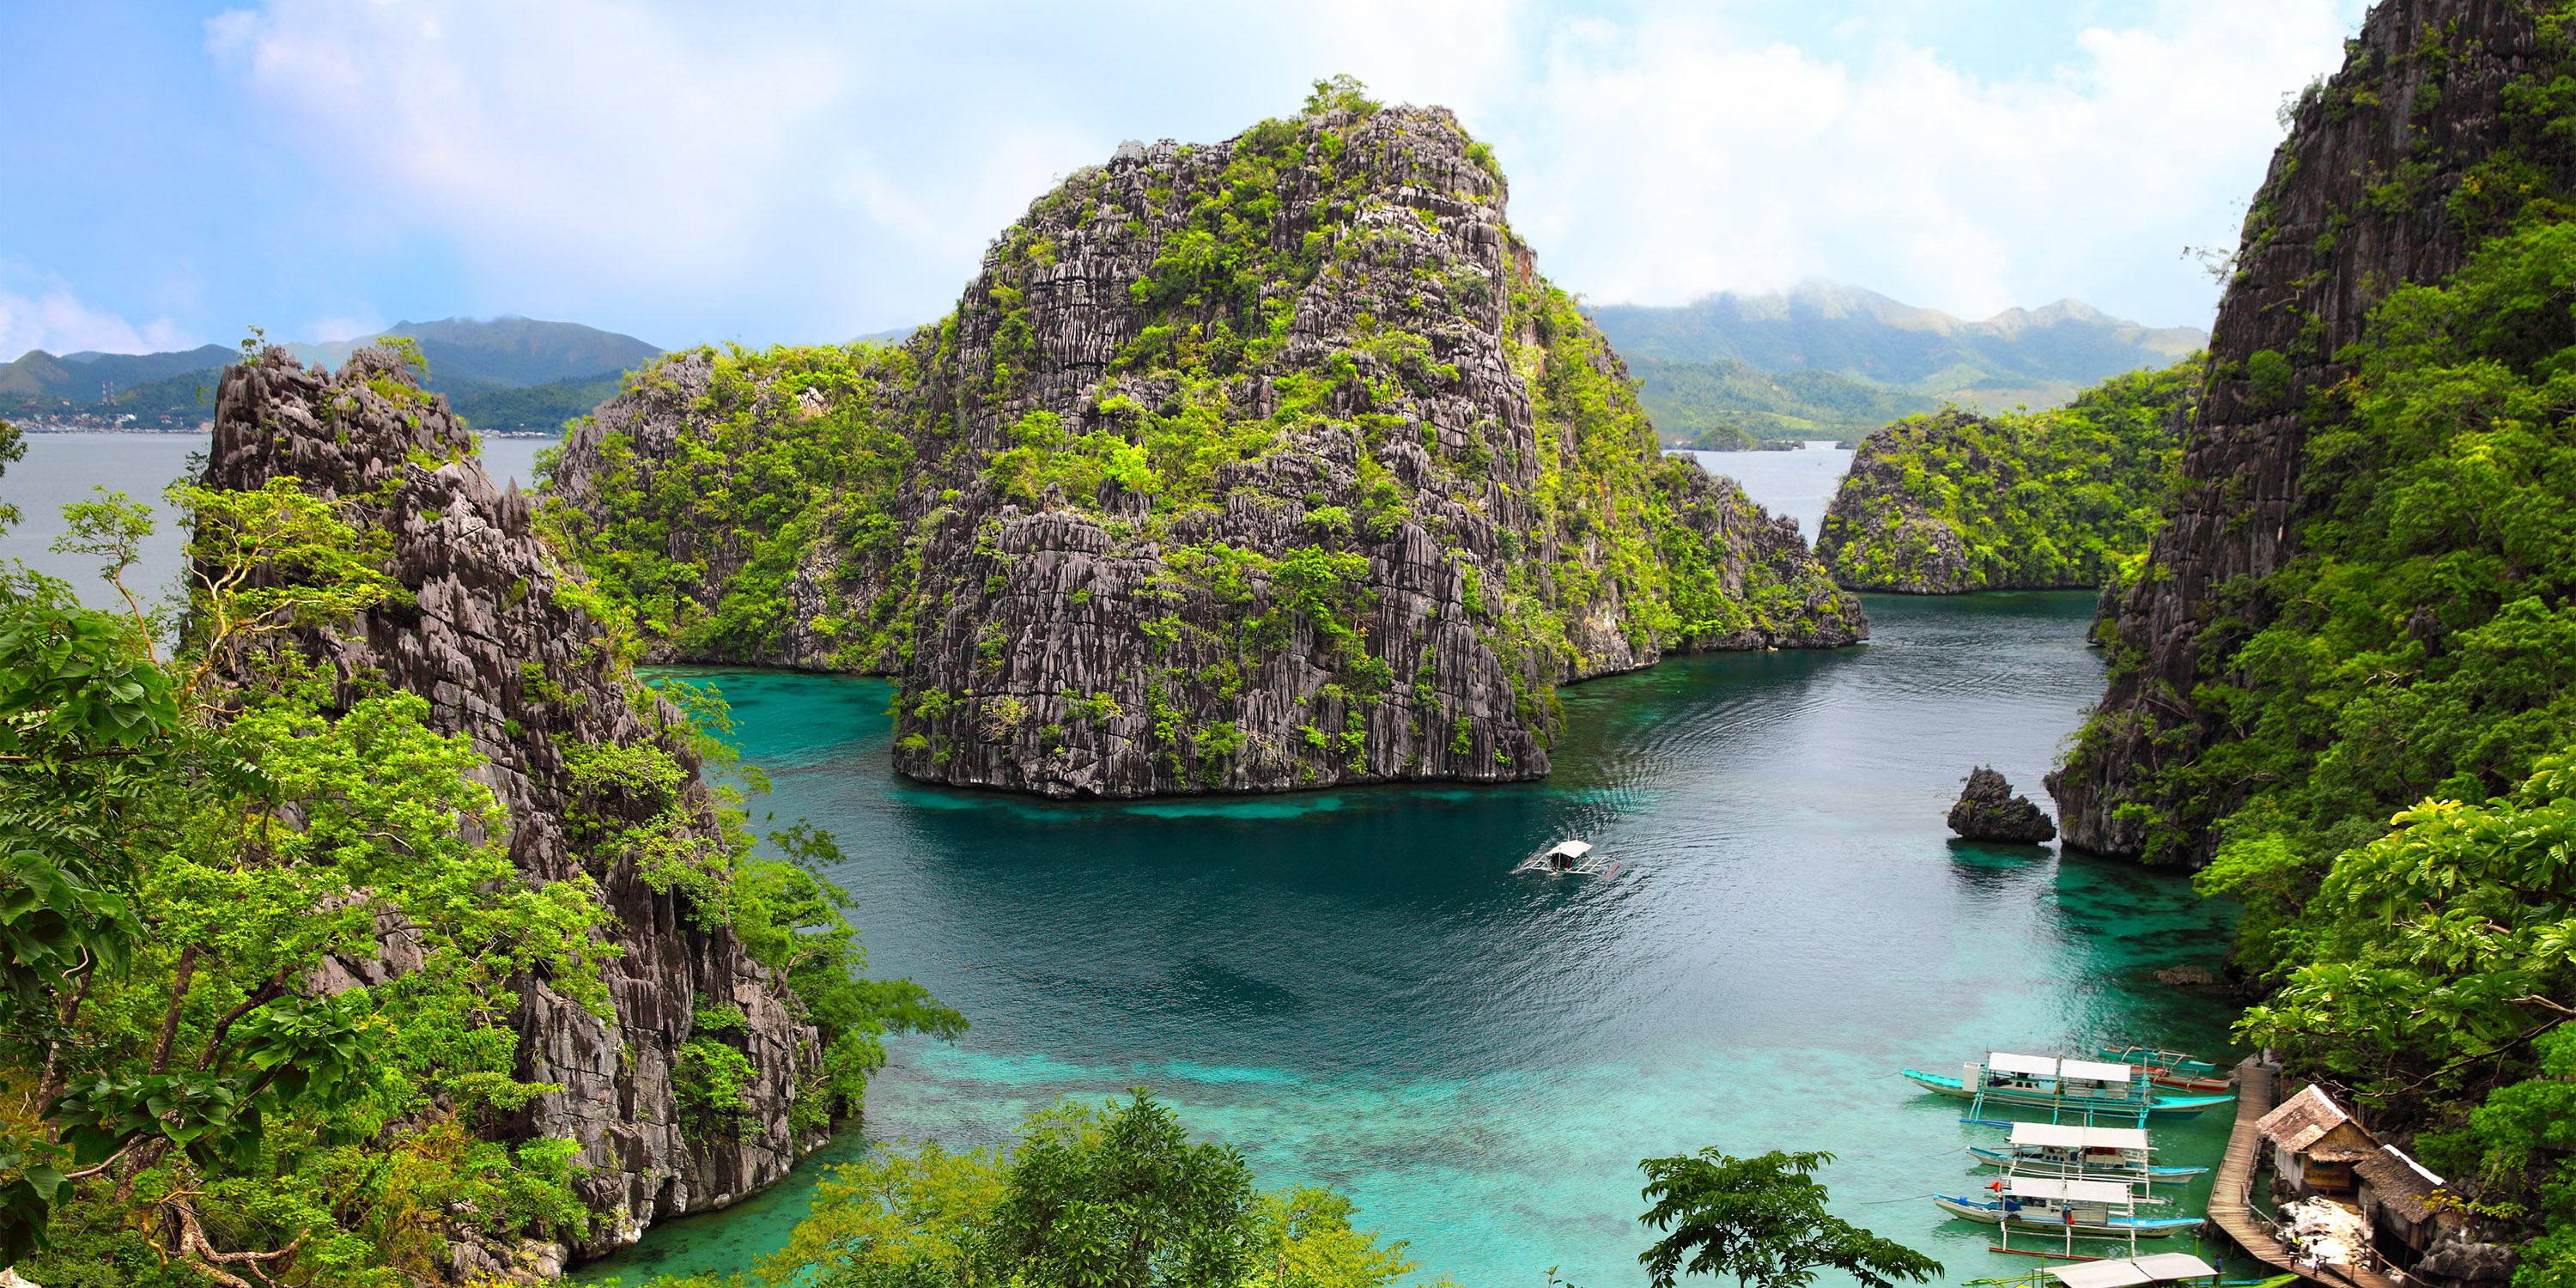 Coron island in the Palawan province of the Philippines